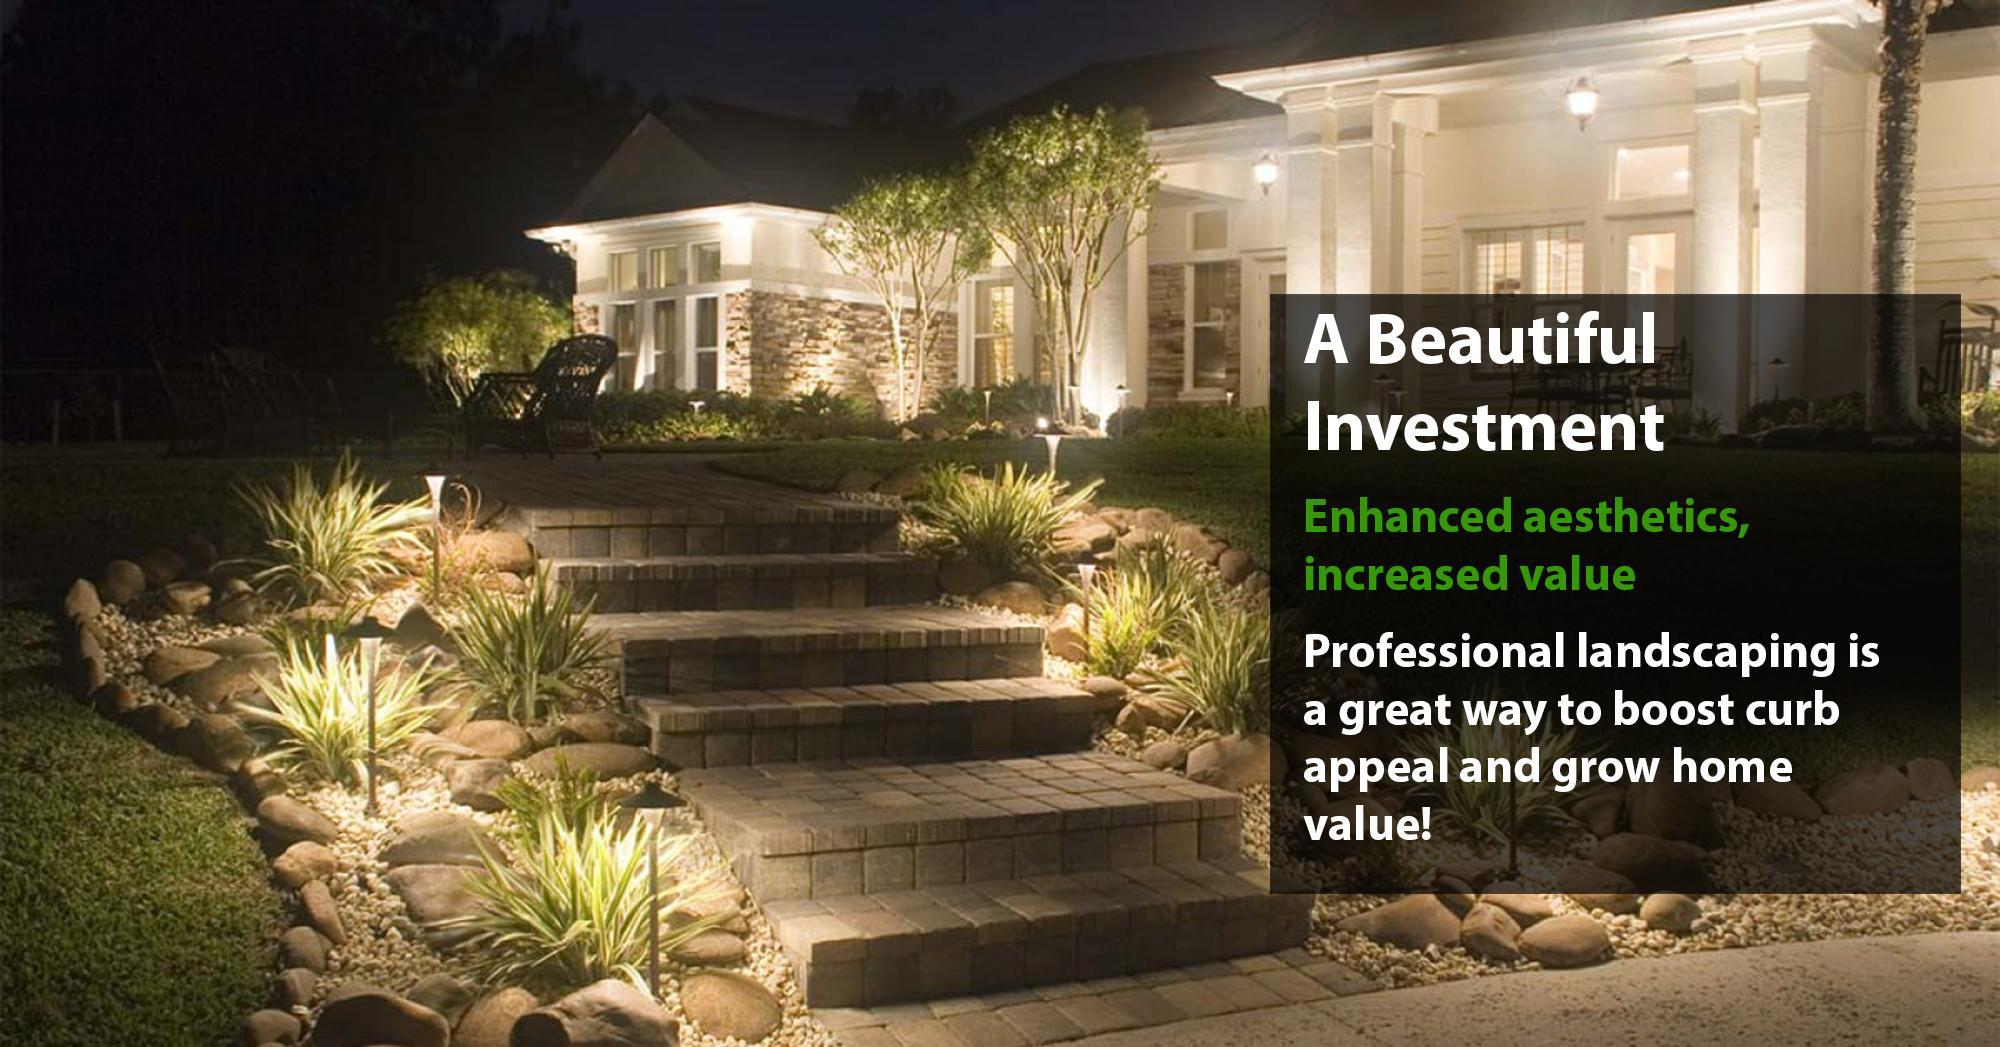 A Beautiful Investment - Inhancing Aesthetics and Increasing Value